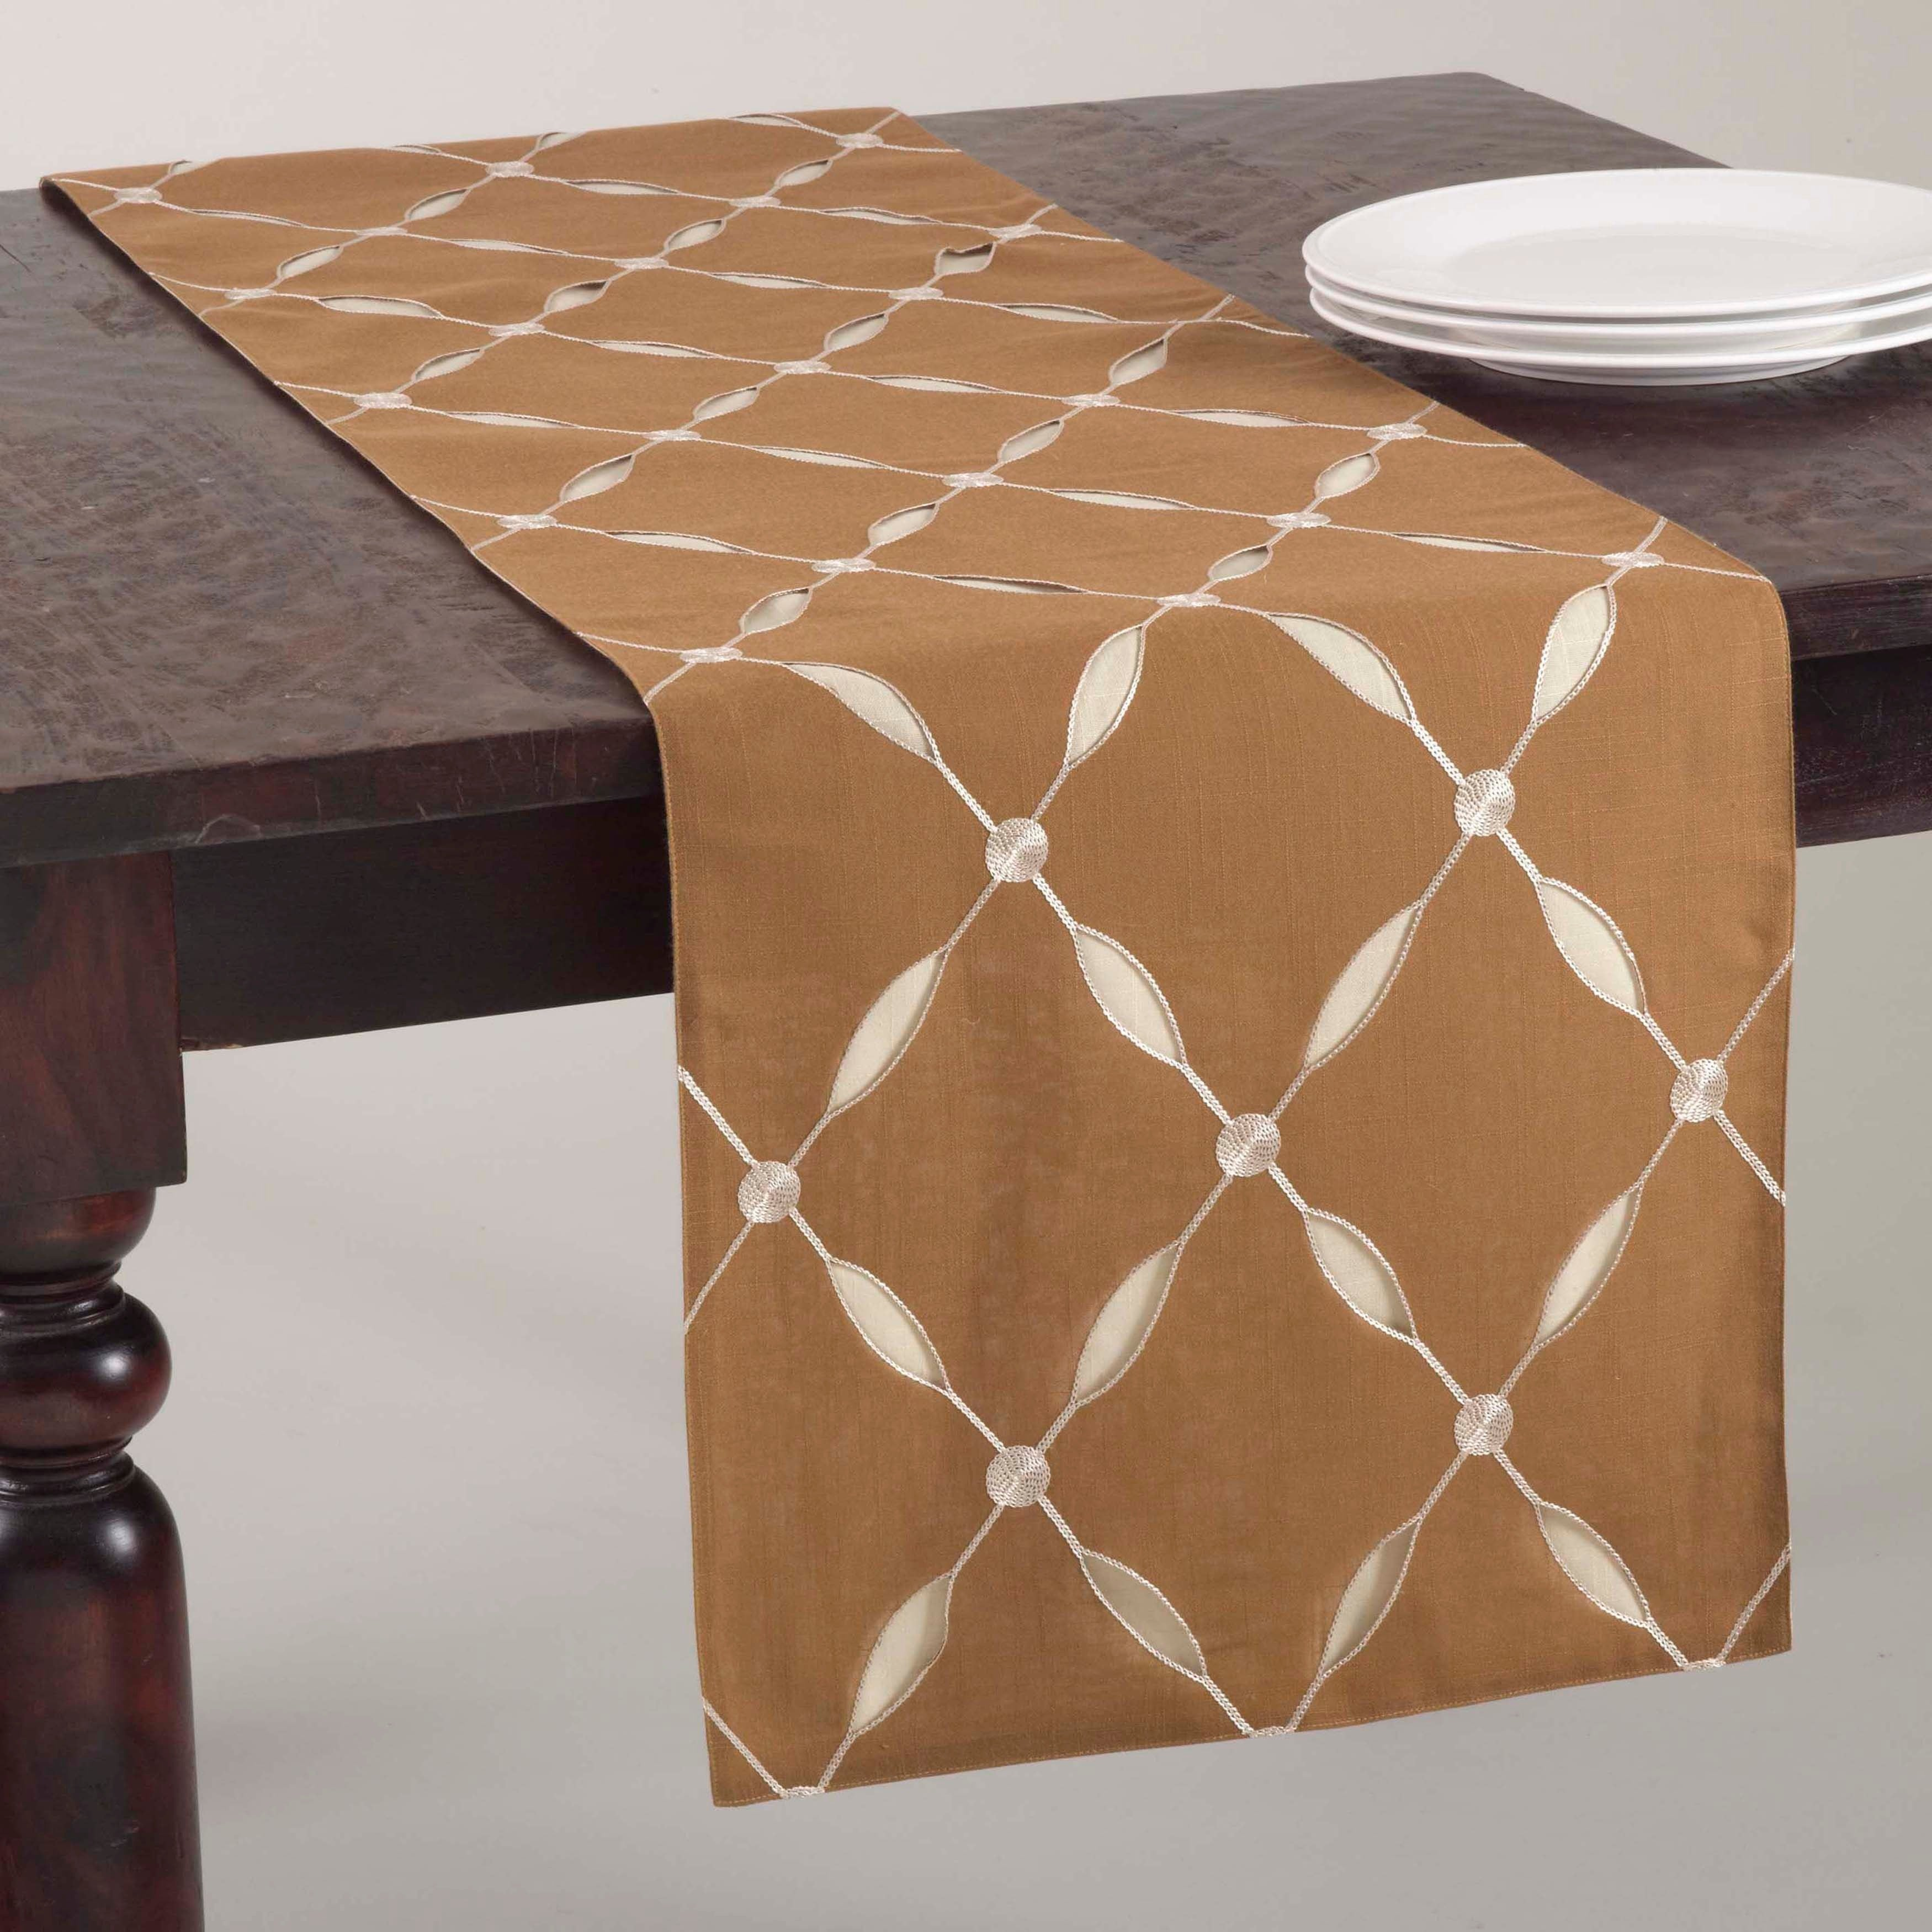 Ordinaire Shop Embroidered Design Table Runner Or Set Of 4 Placemats   On Sale   Free  Shipping On Orders Over $45   Overstock.com   9414849